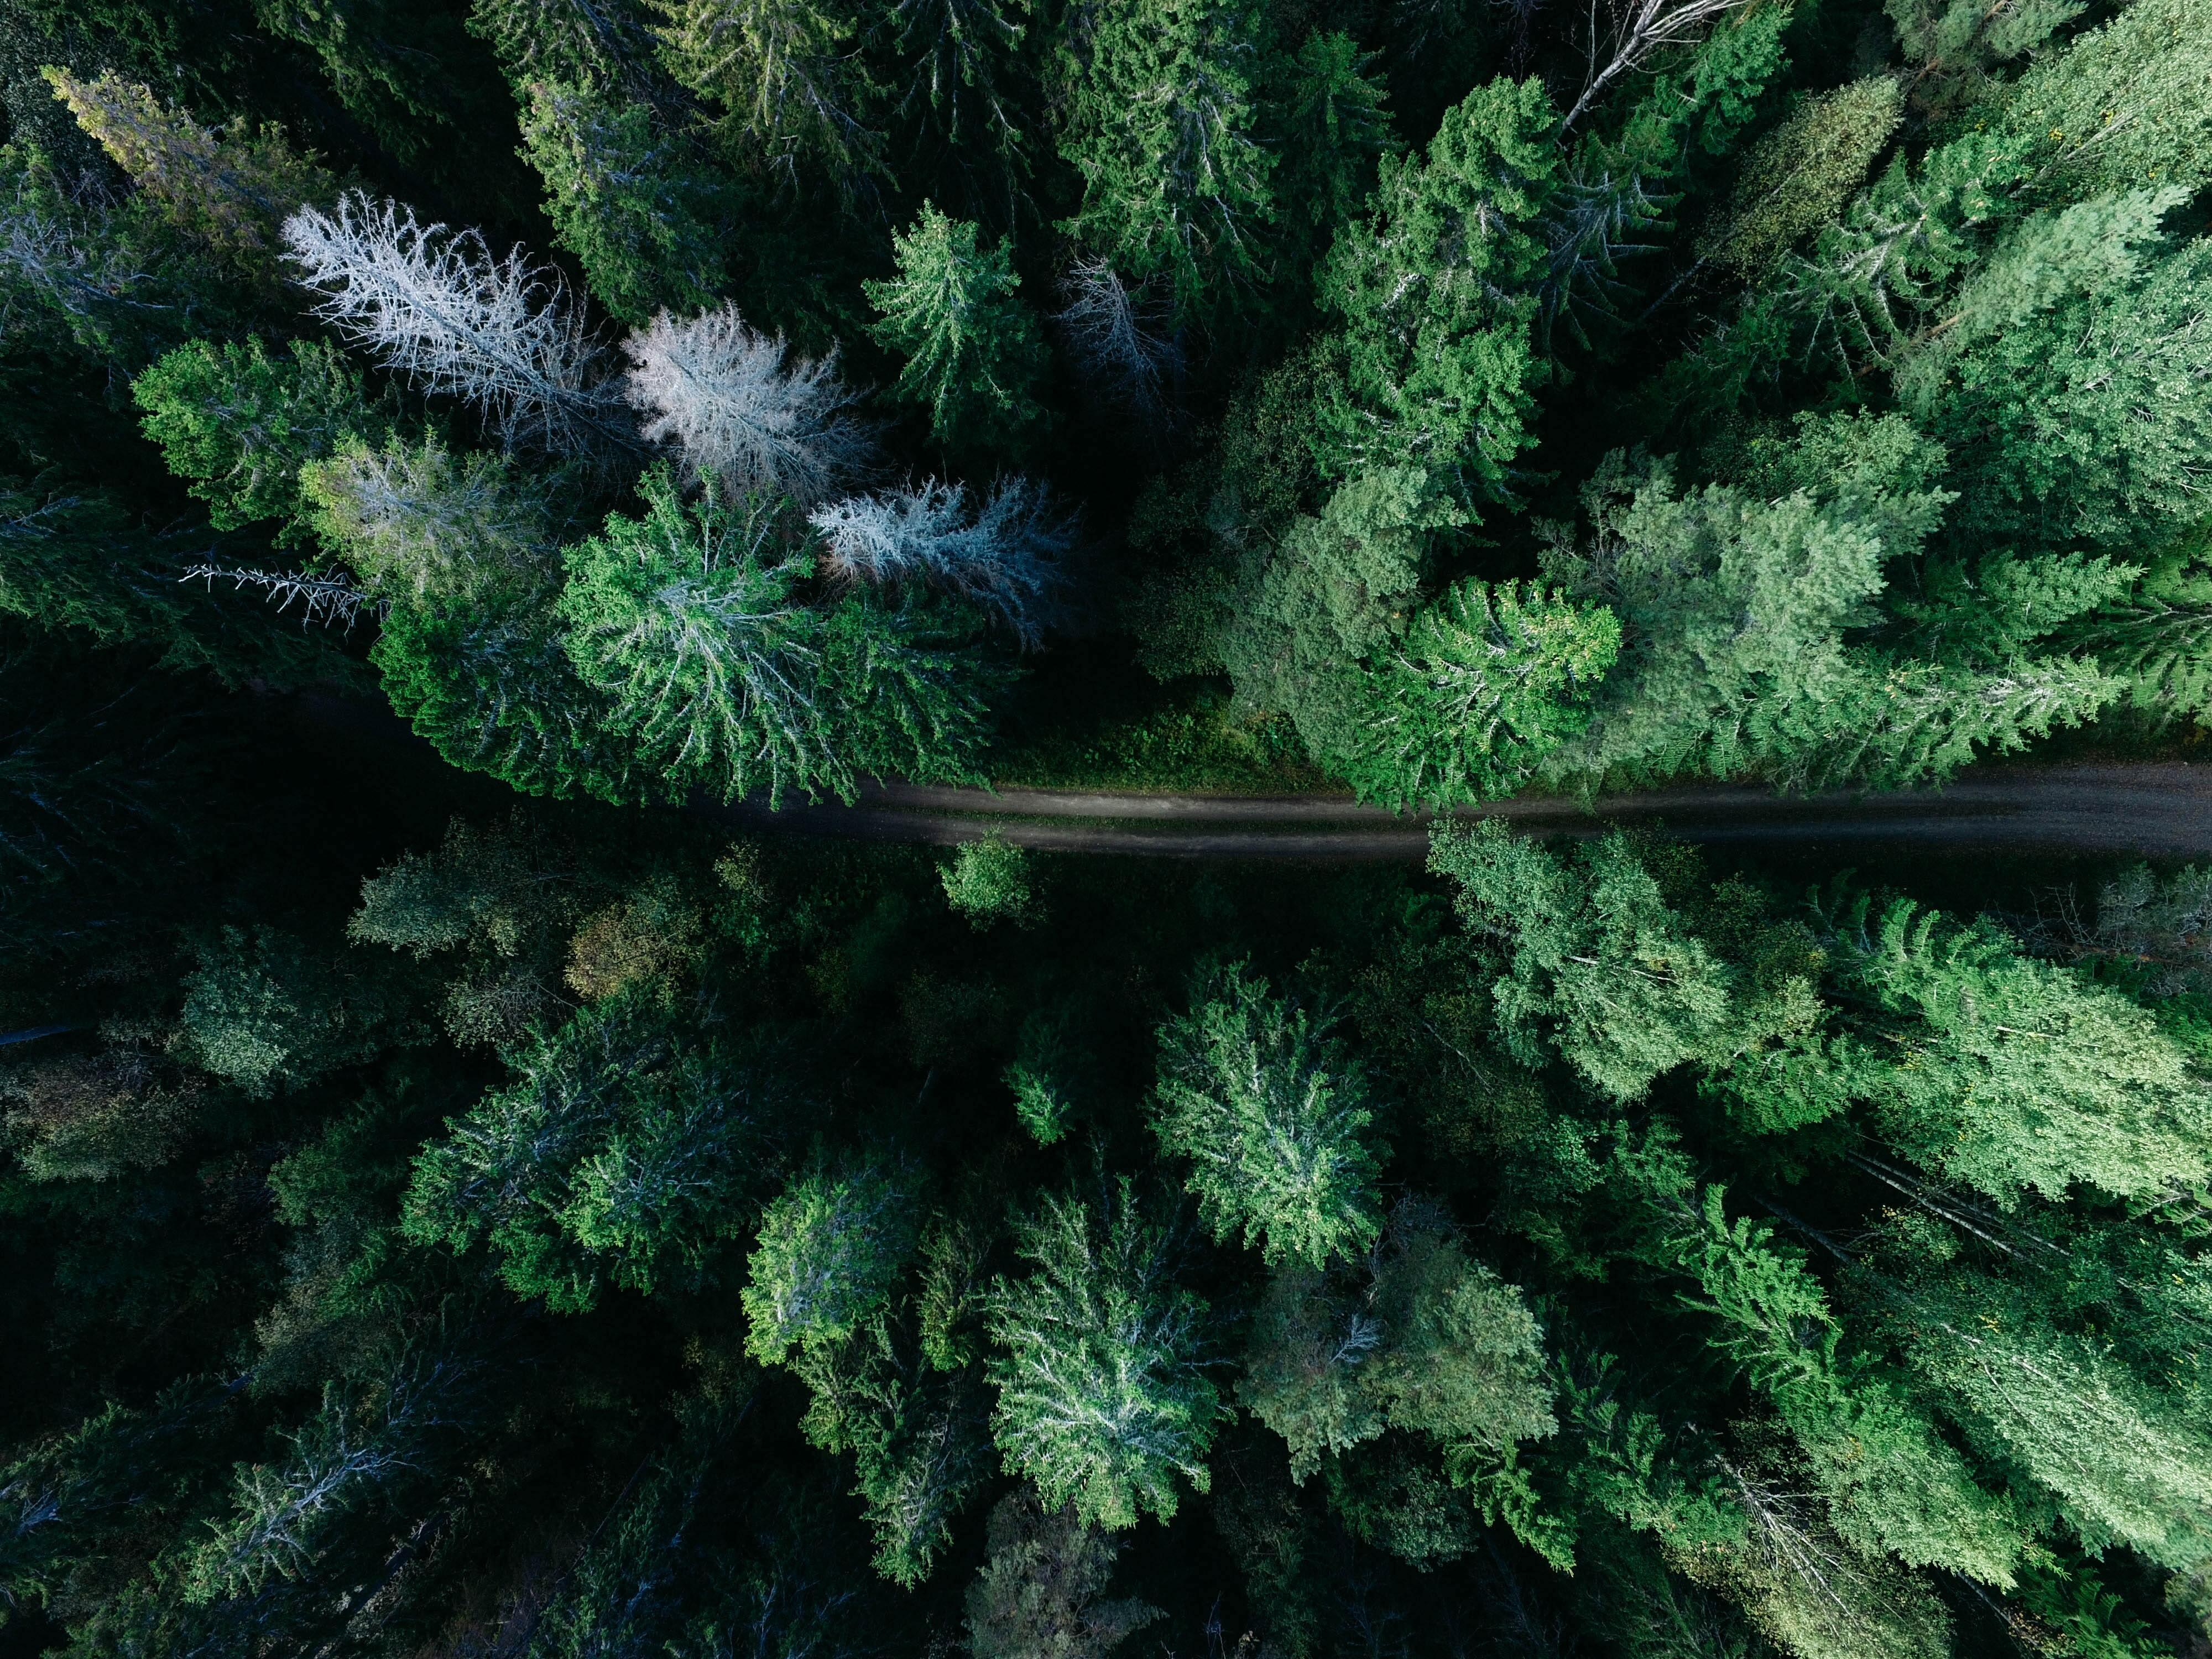 Arial picture of trees with a road through the center